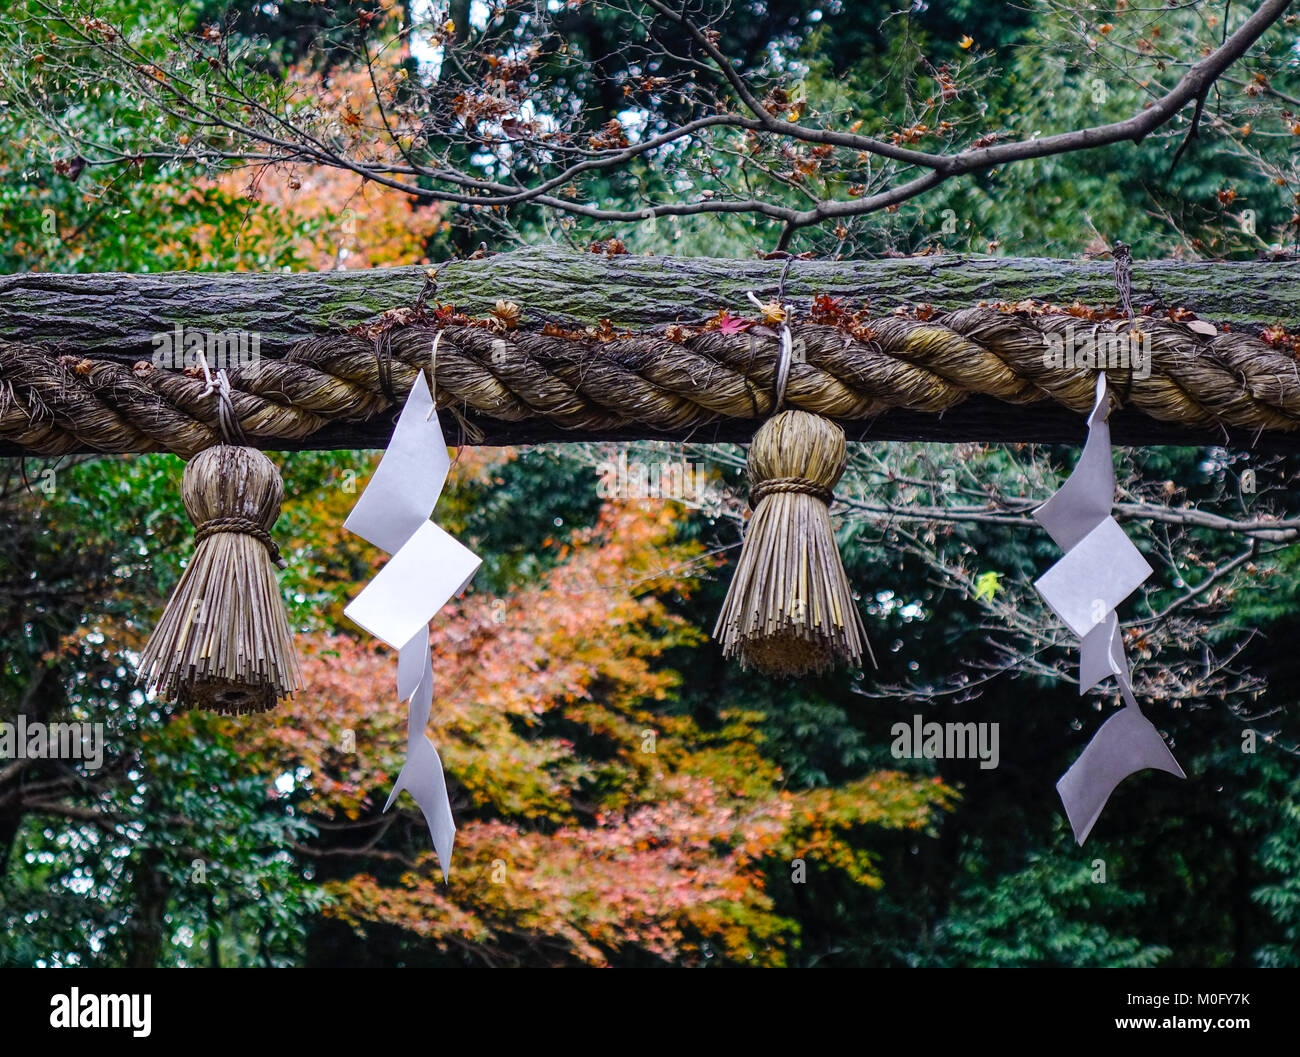 Ancient wooden torii of Shinto Shrine with nature background in Kyoto, Japan. - Stock Image